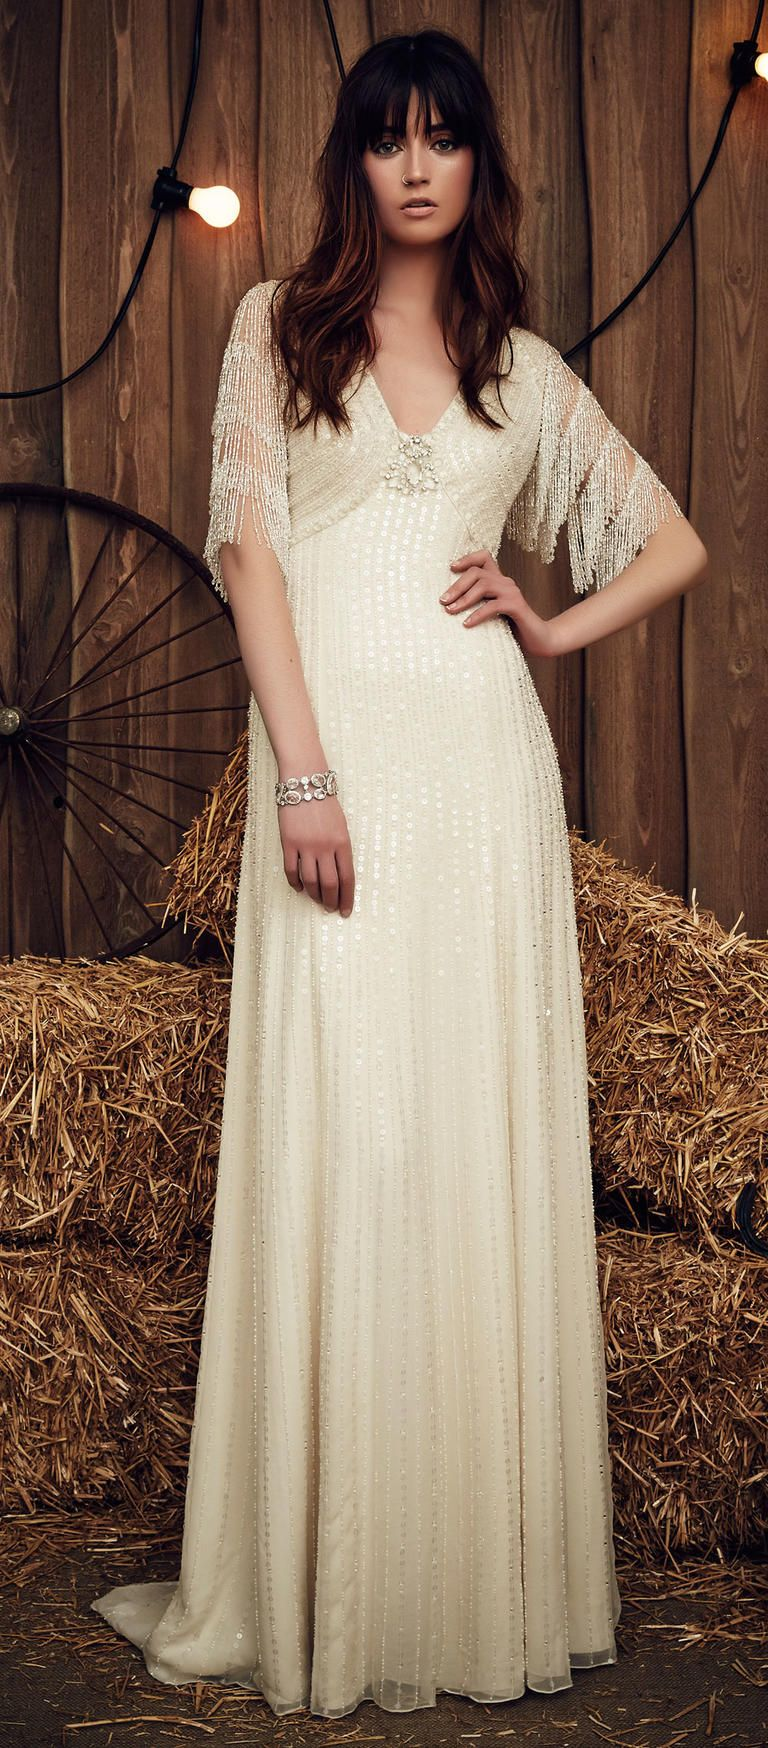 Jenny packham spring savannah offwhite wedding dress with